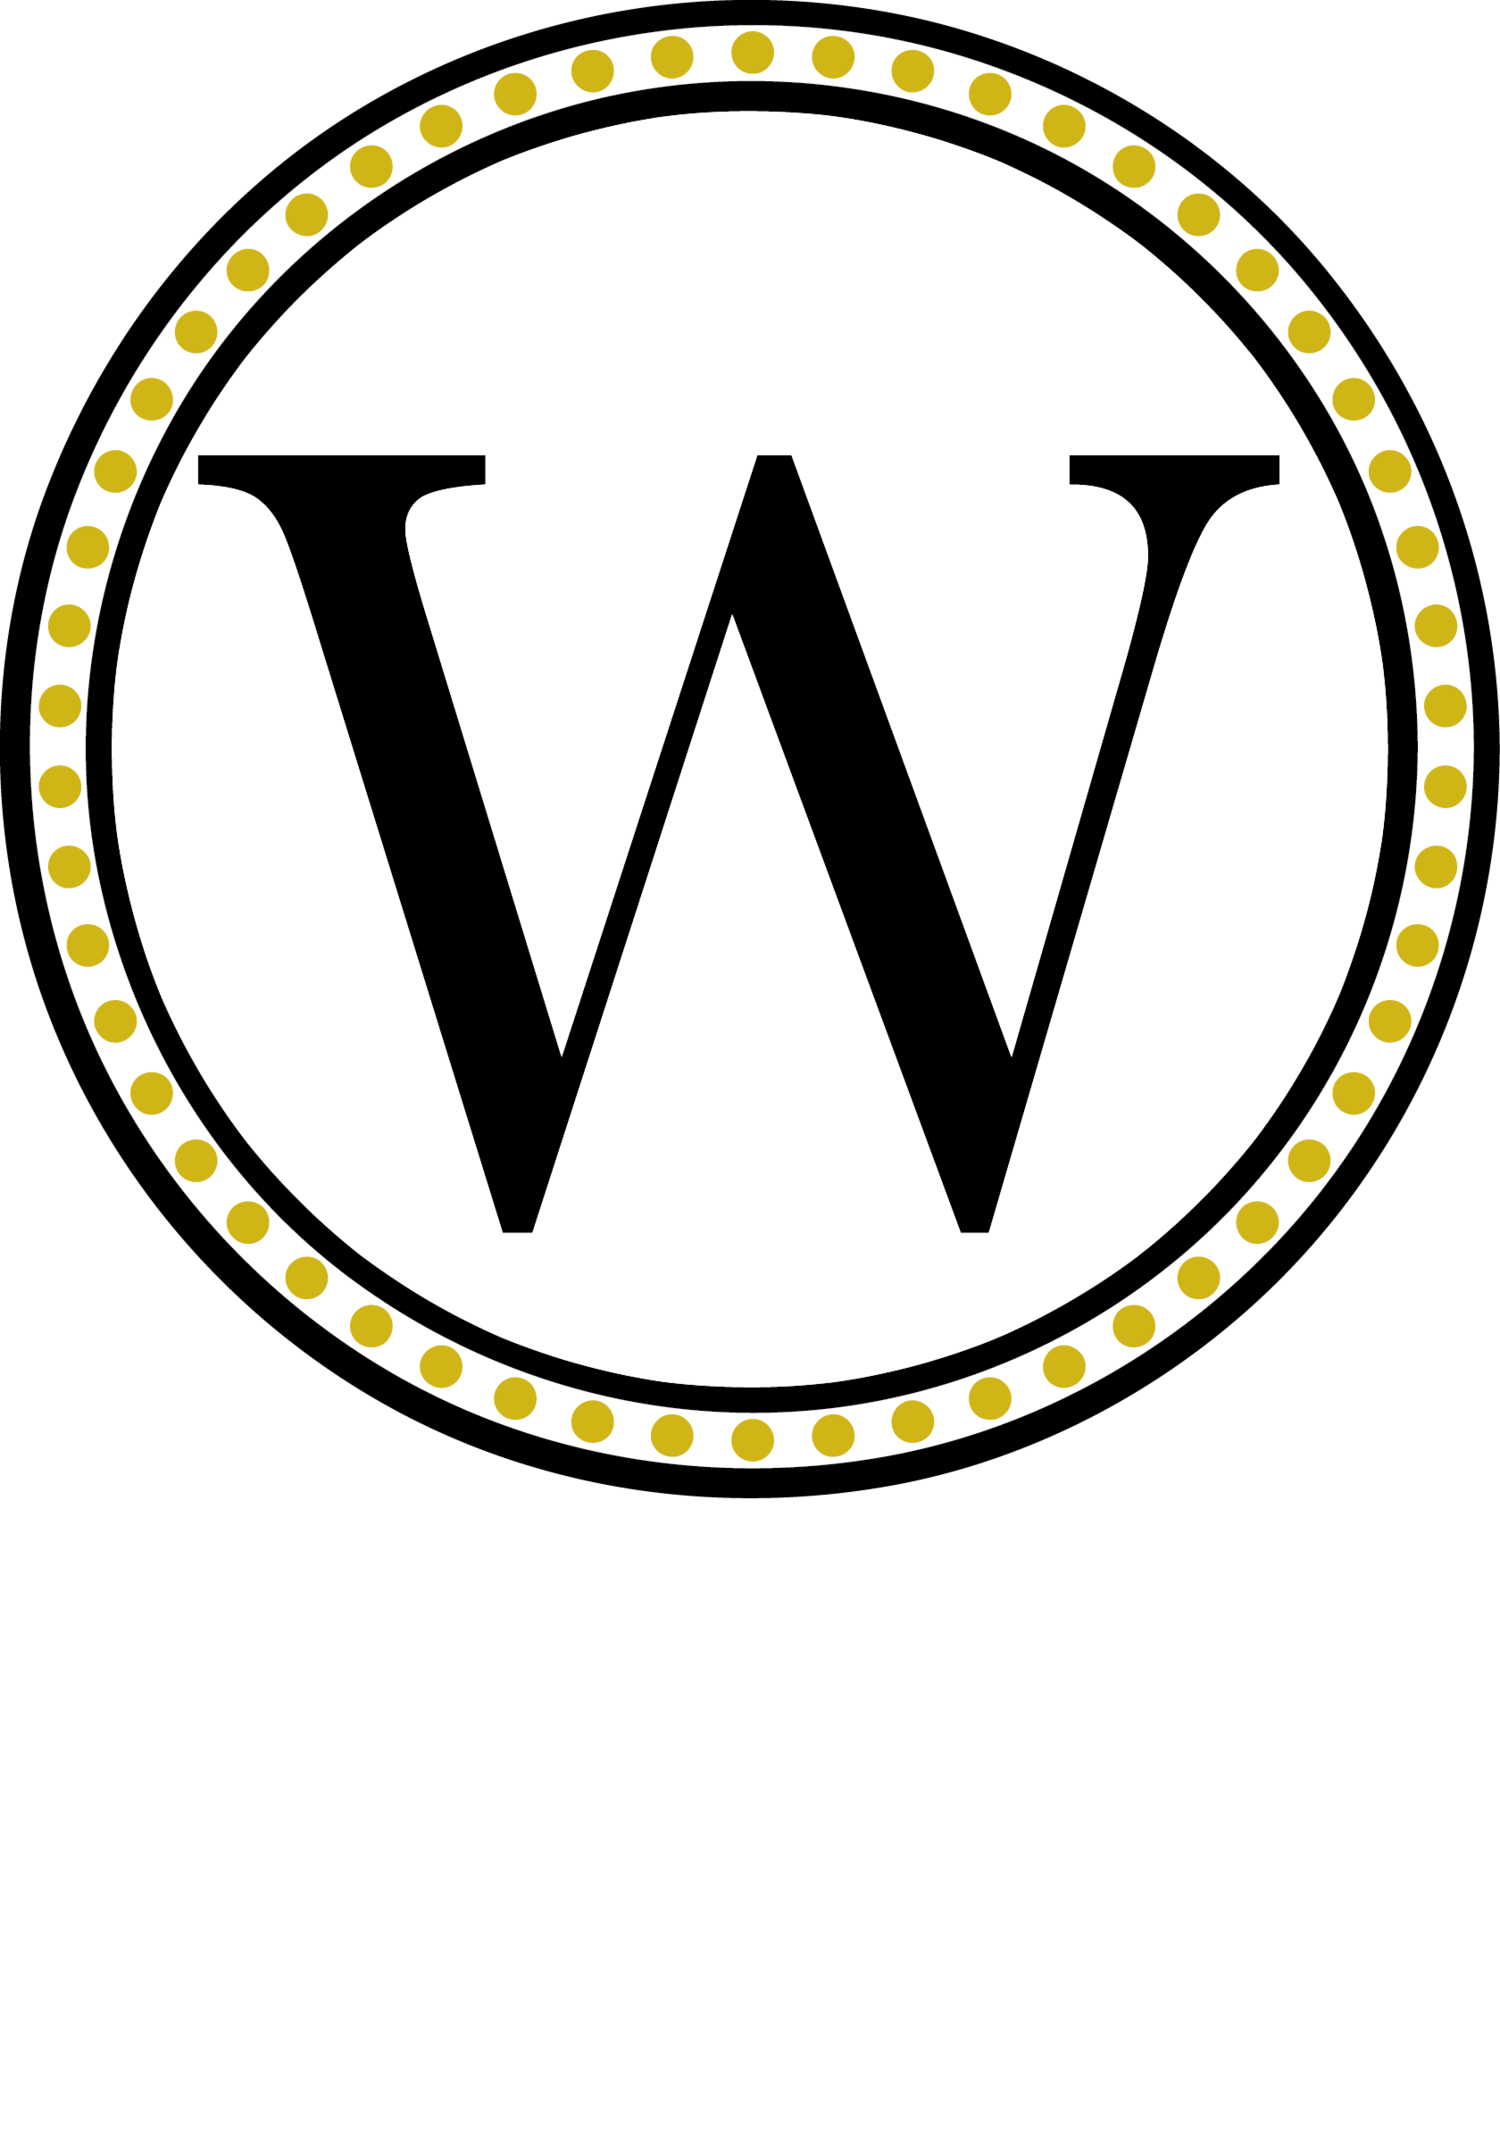 Wilson Nursing Center